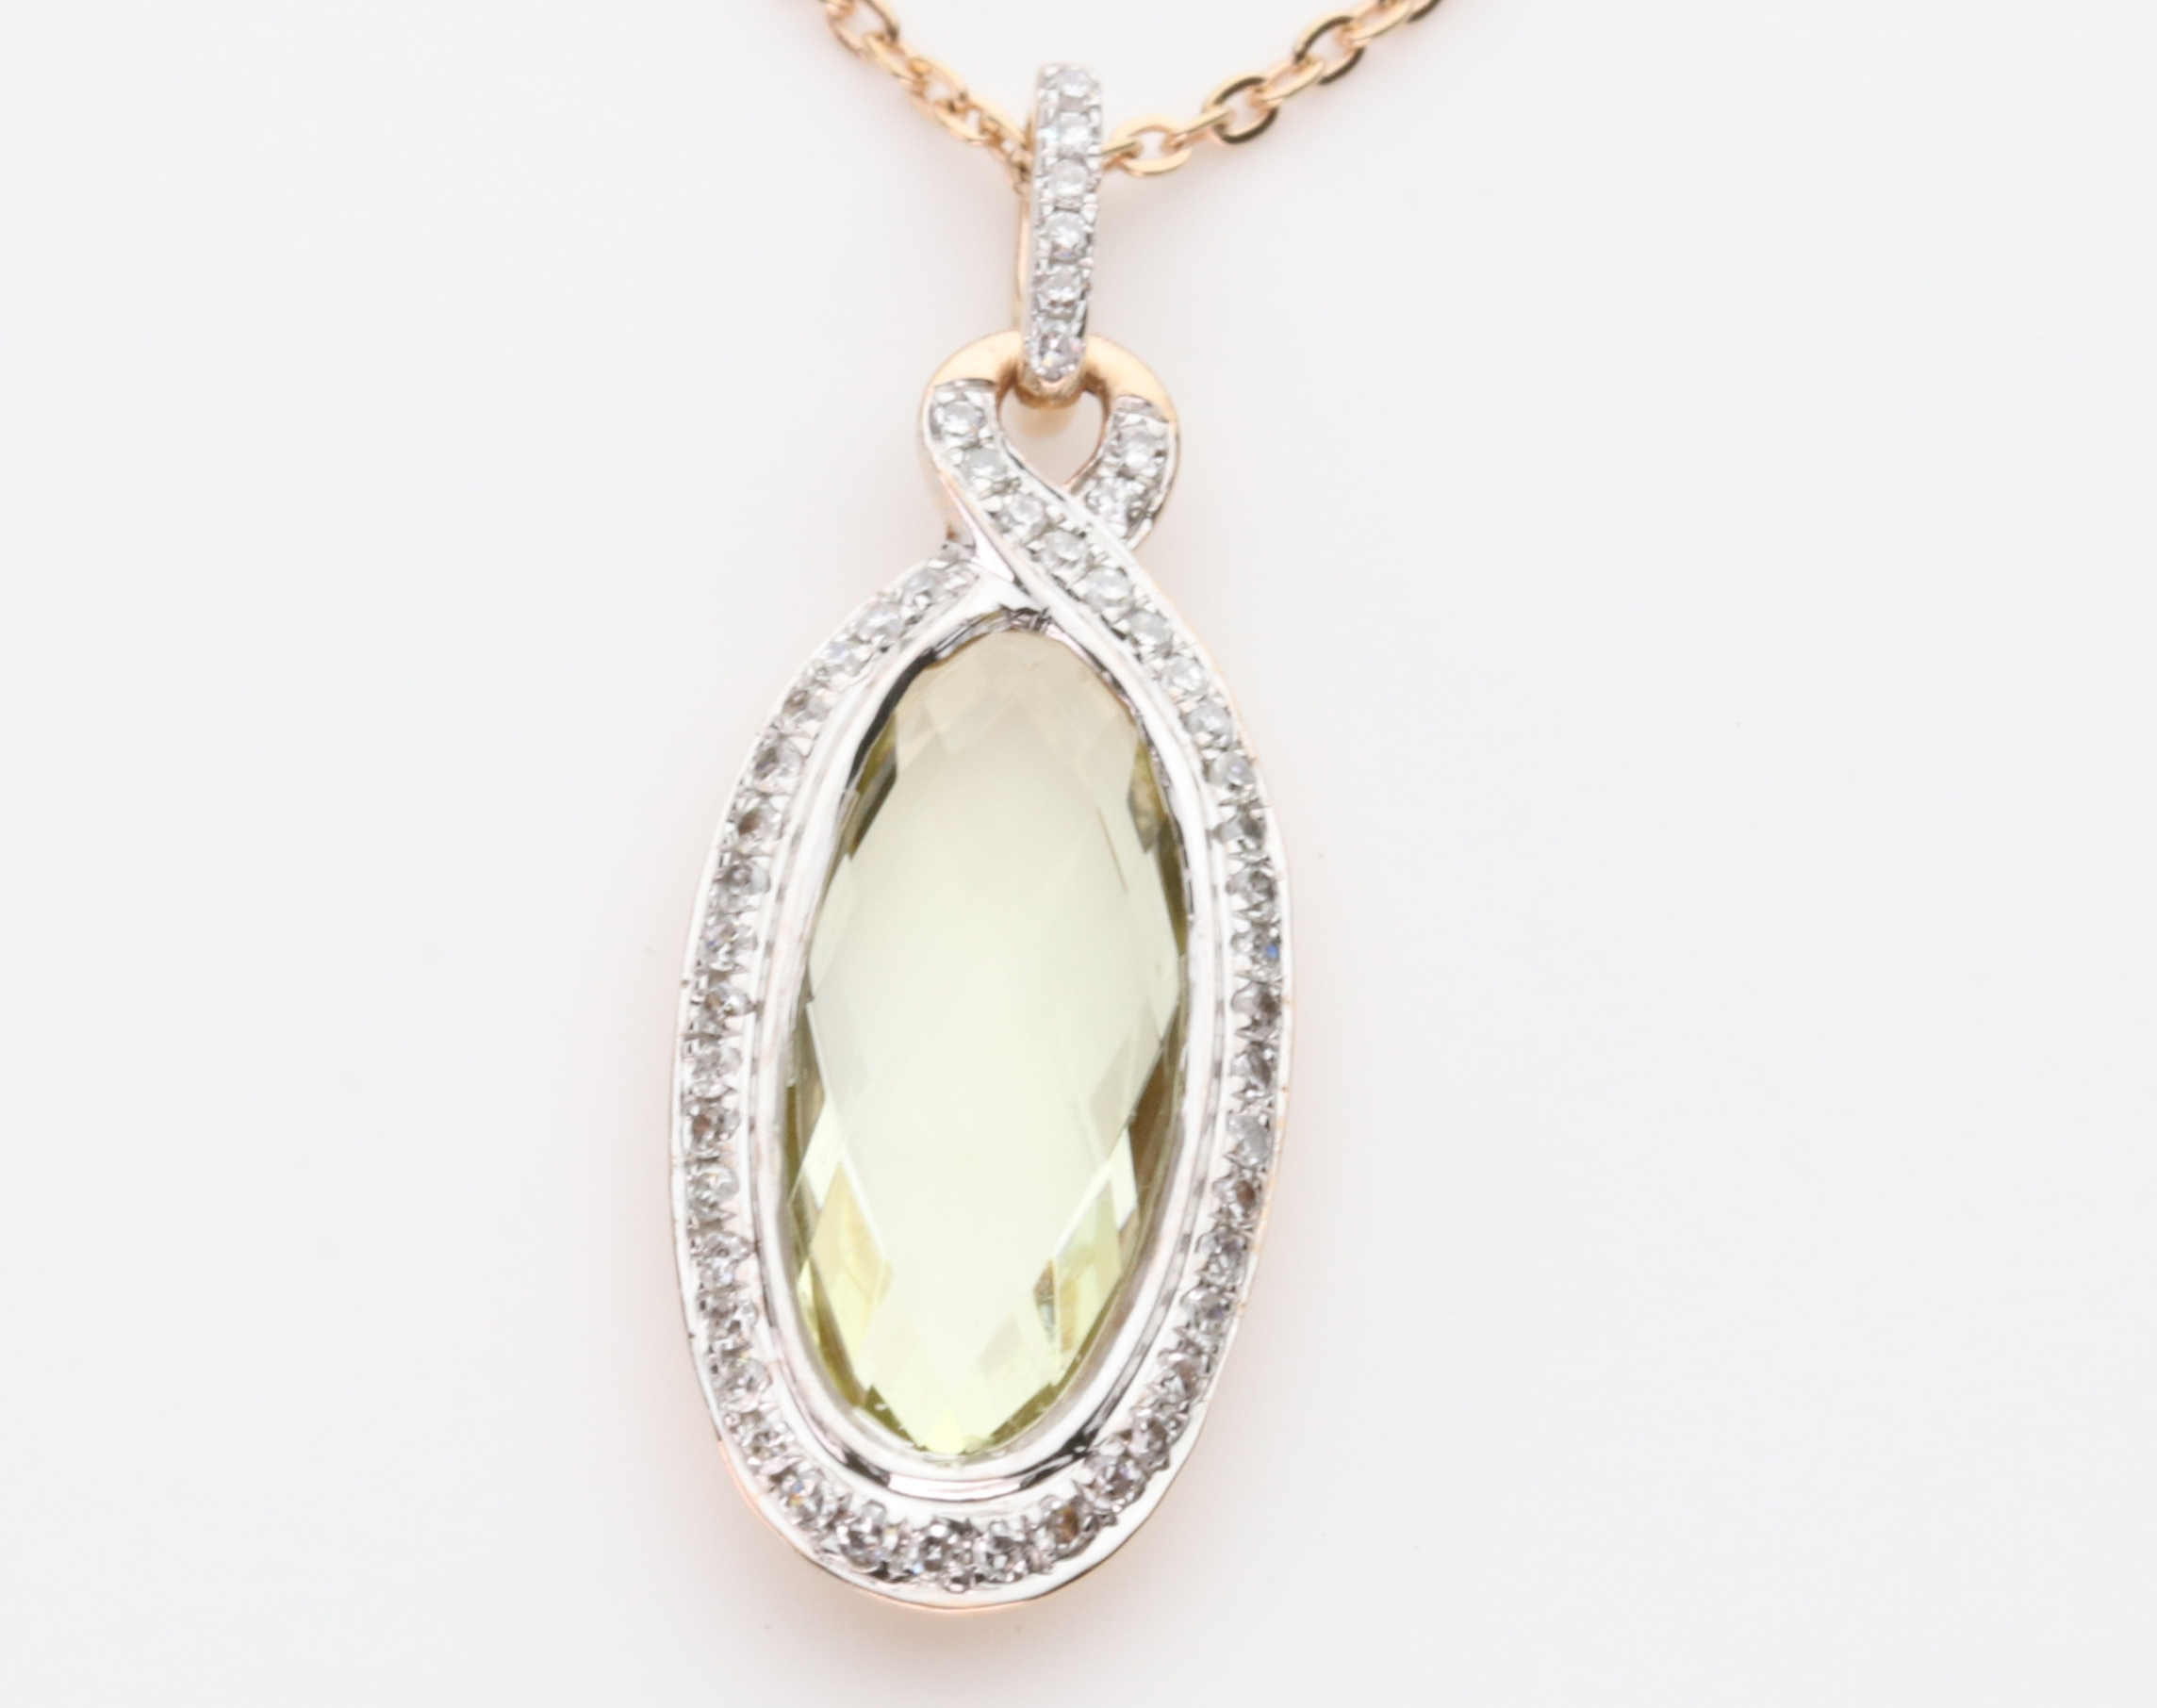 9ct Rose Gold Pendant With Diamonds And Lime Quartz